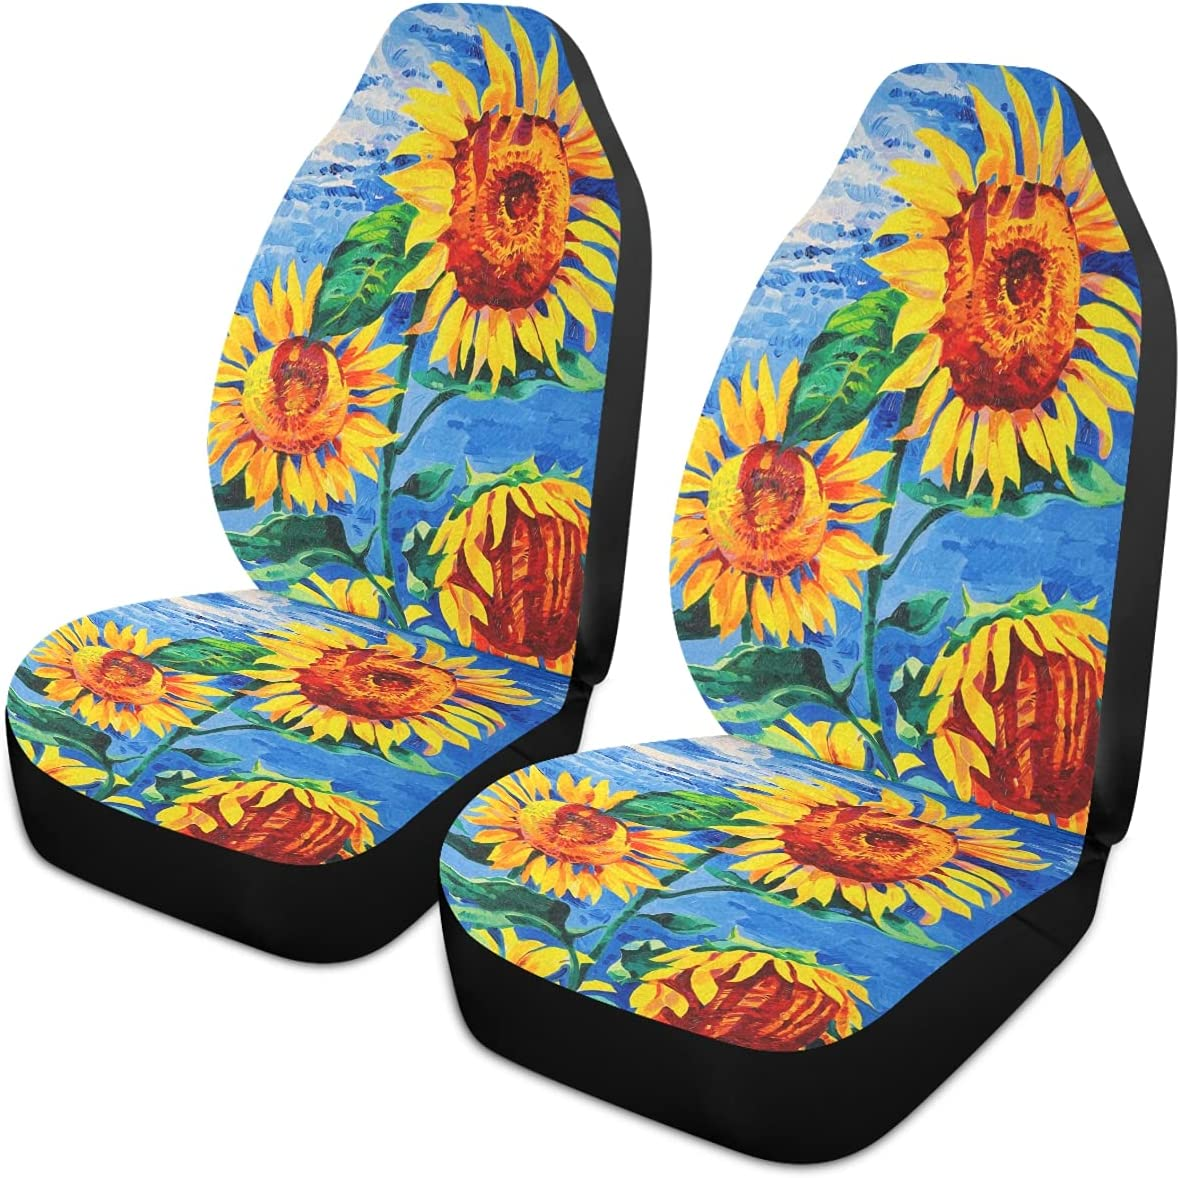 Oarencol Sunflower Car Seat Cheap mail order sales Covers Painting Univ Tampa Mall Floral Sky Blue